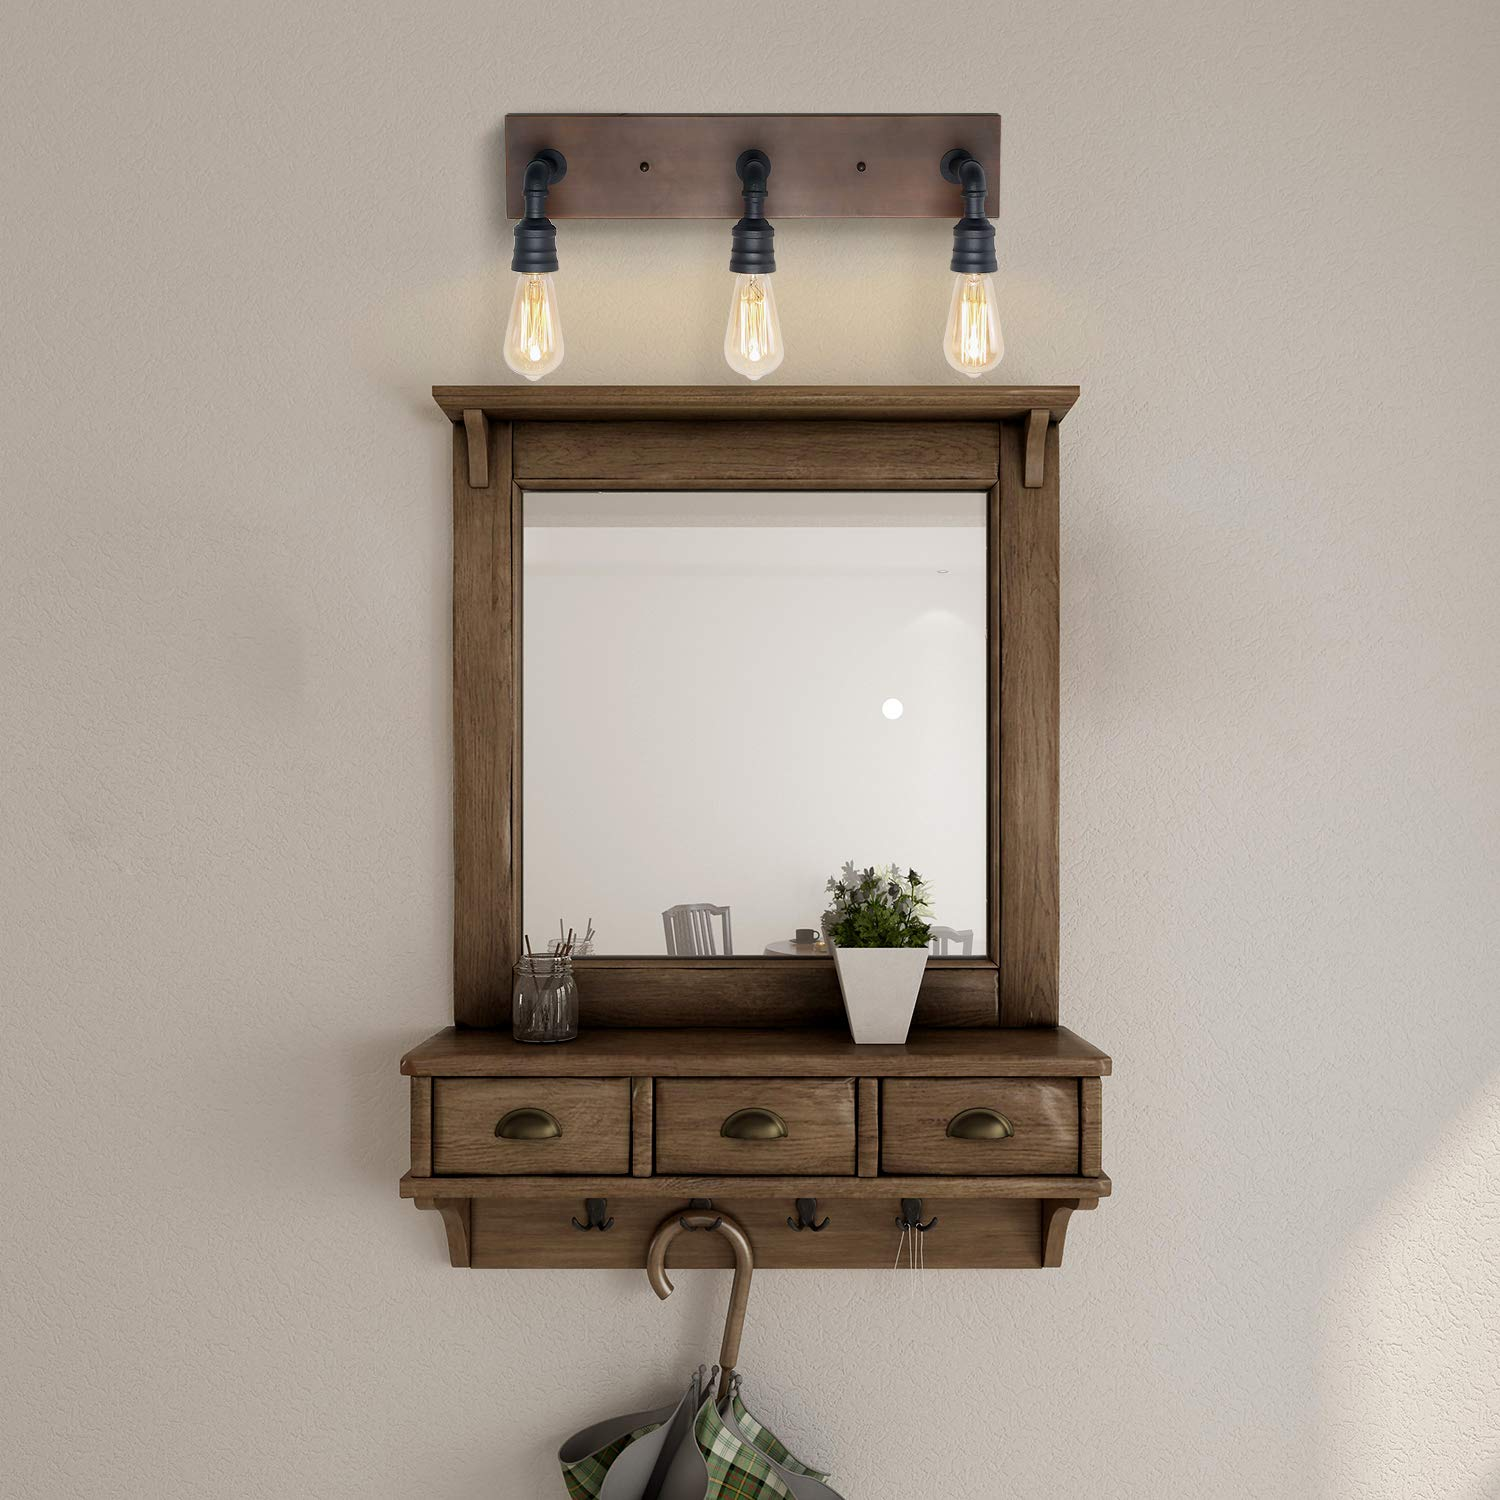 LNC Bathroom Vanity Lights, Farmhouse Wood and Water Pipe Wall Sconces(3 Heads )A03376, by LNC (Image #2)